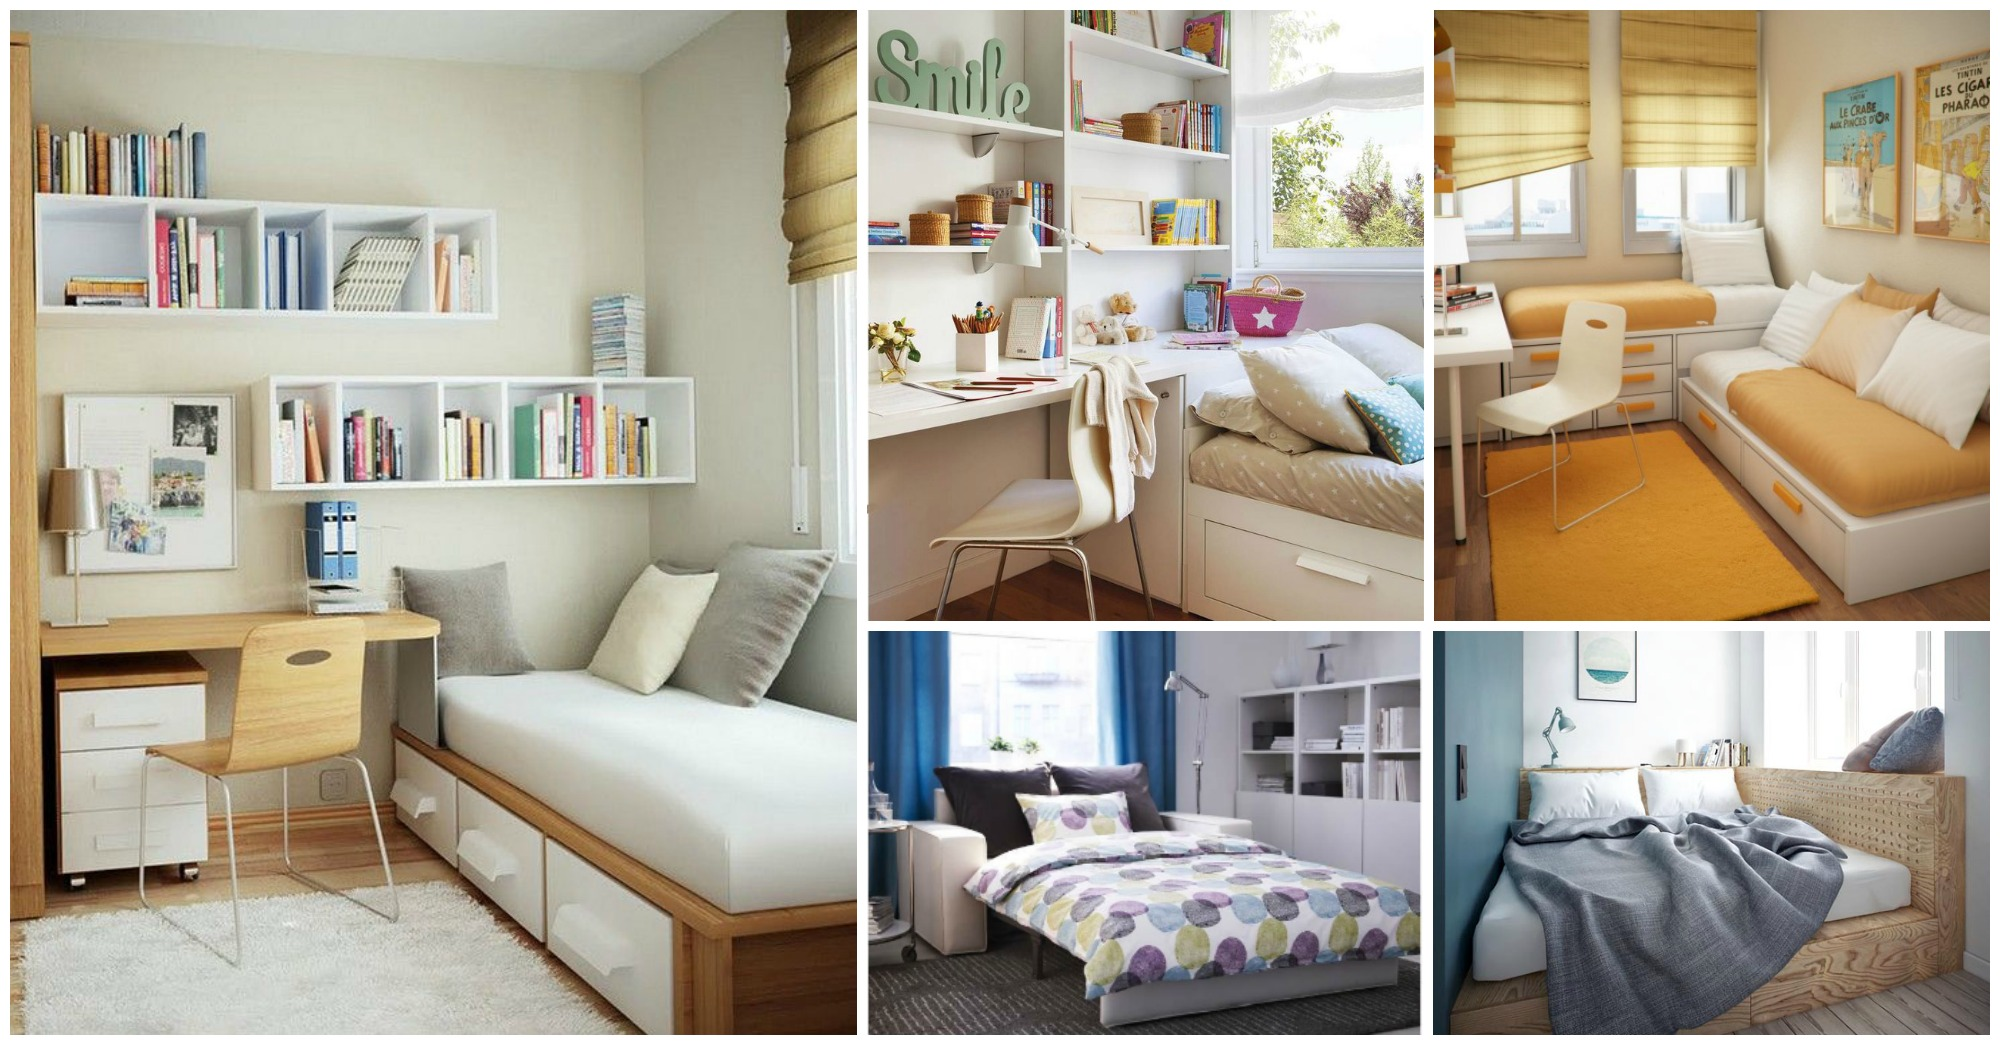 15 grandes ideas para dormitorios peque os muy acogedores On paginas de ideas de decoracion